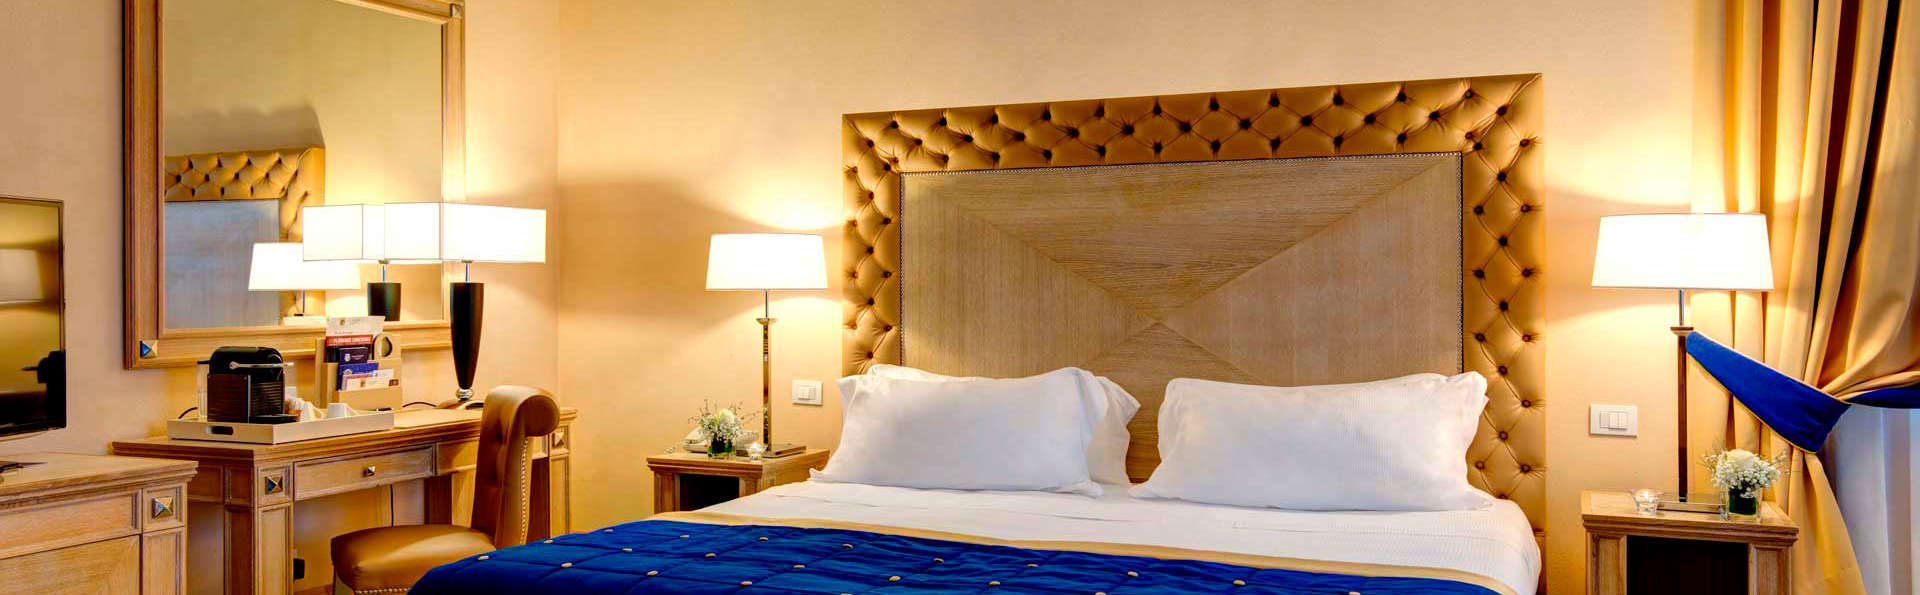 villa tolomei hotel resort h tel de charme florence. Black Bedroom Furniture Sets. Home Design Ideas